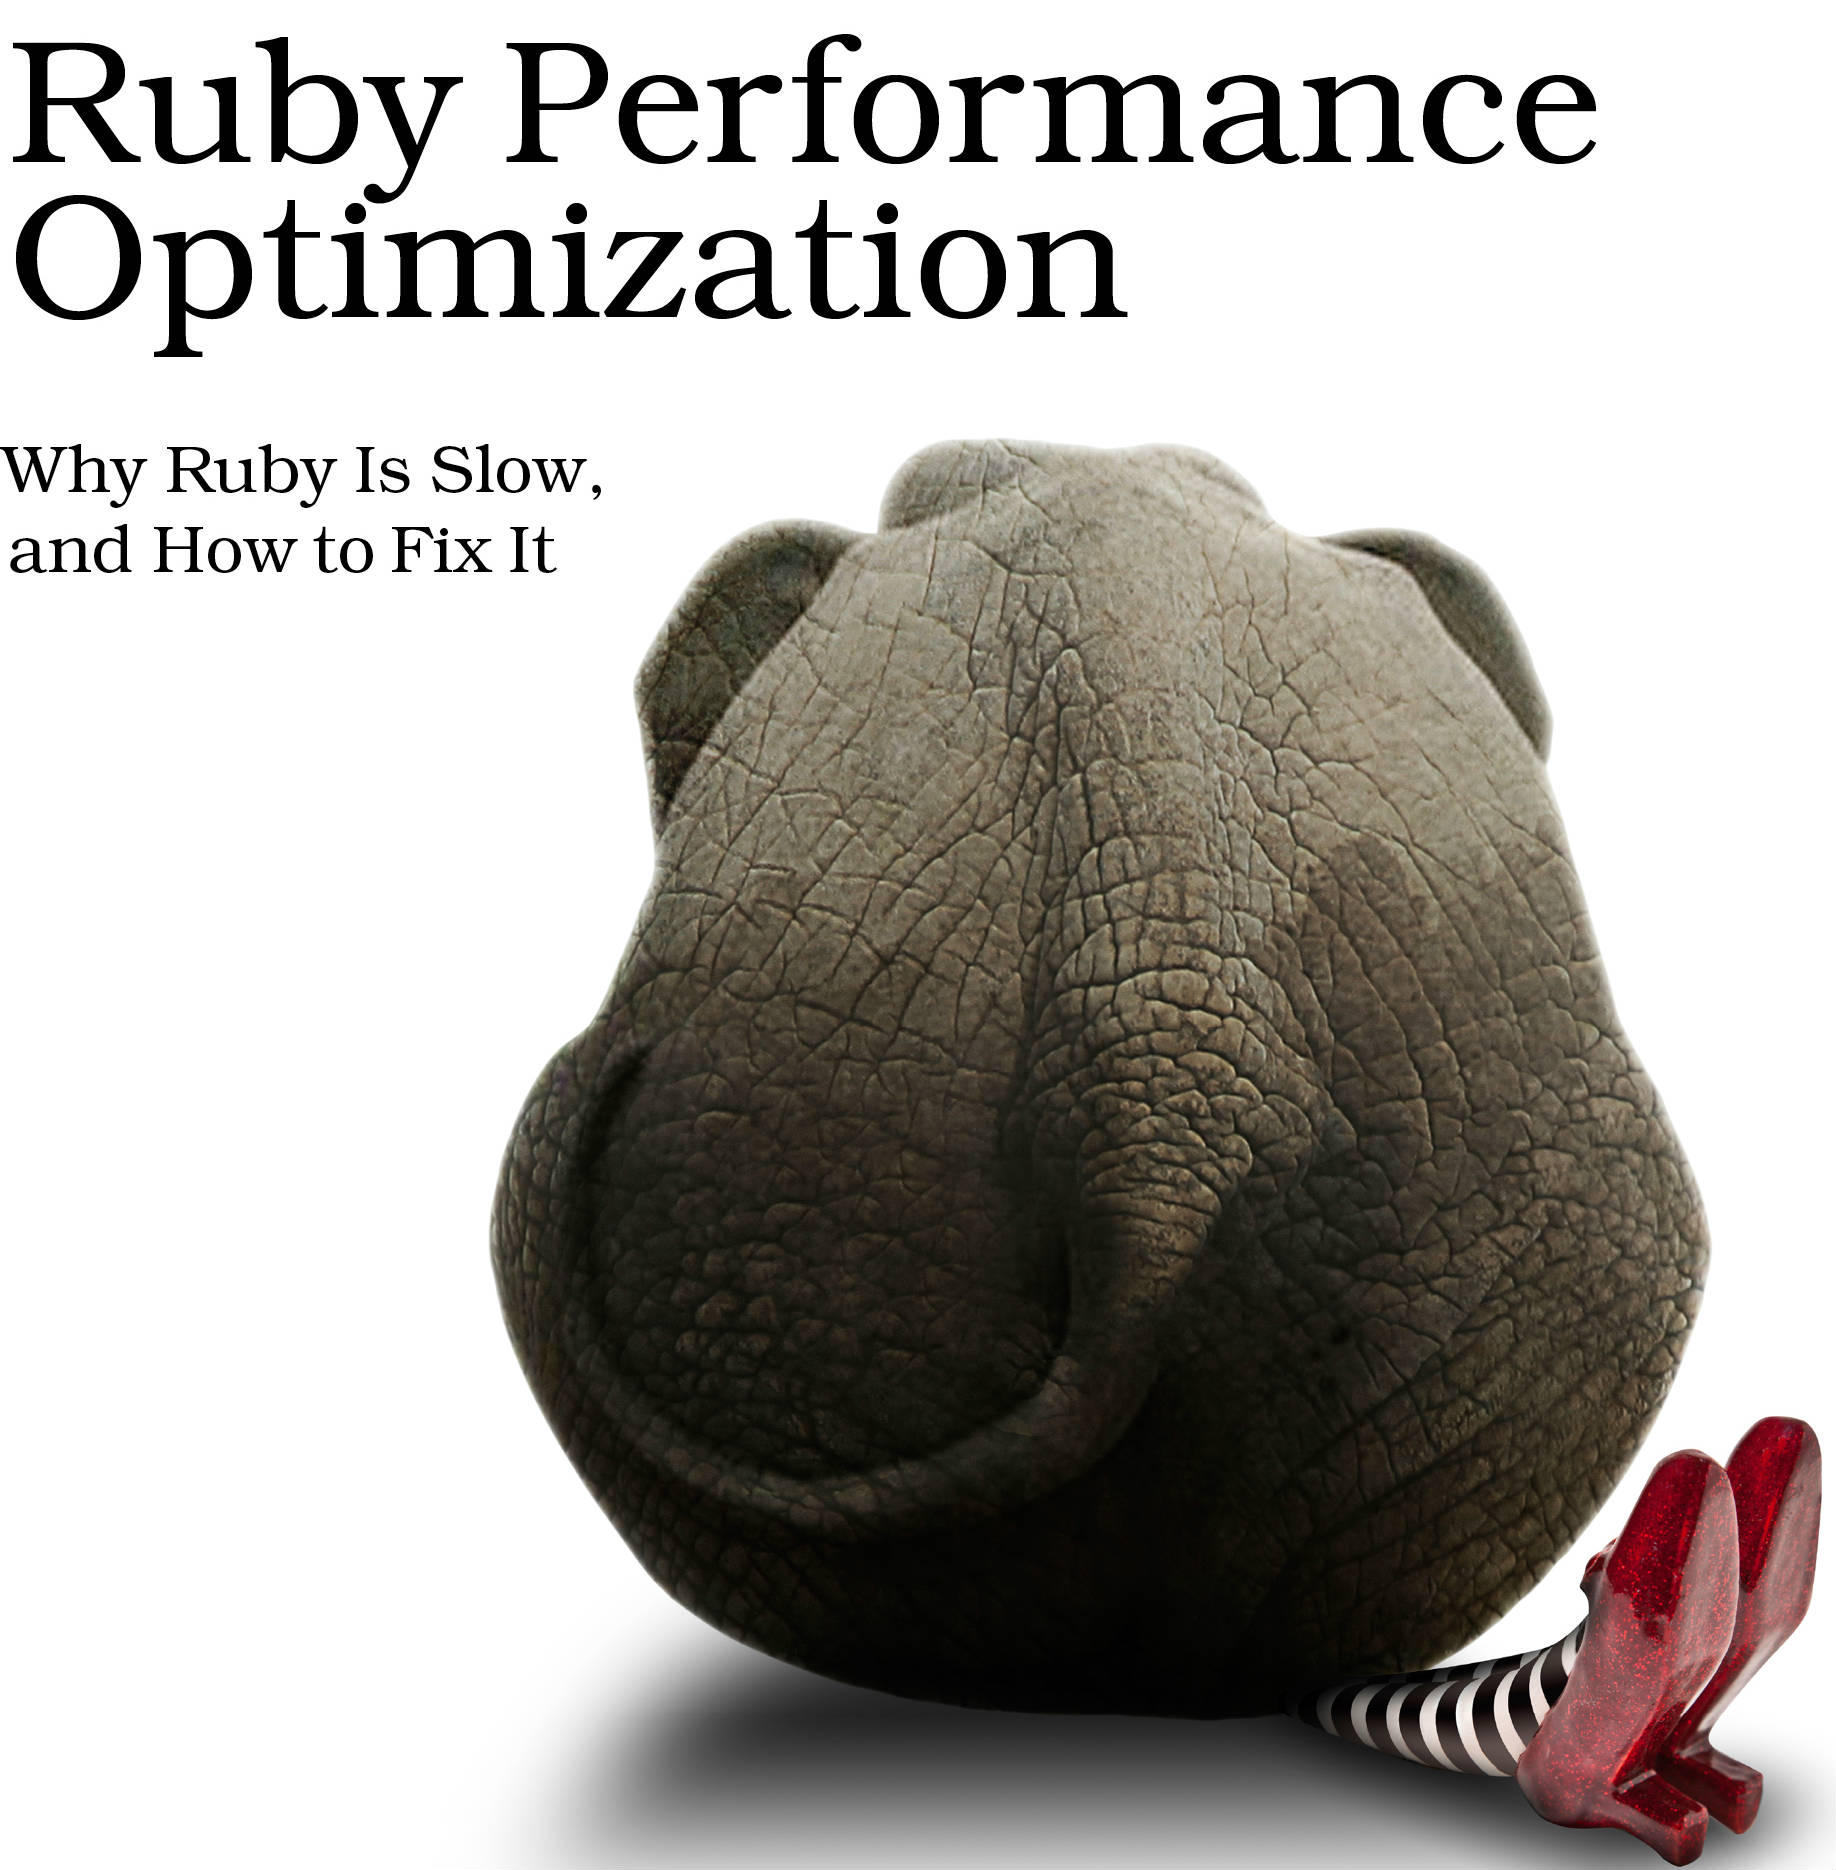 Micro-optimize Ruby